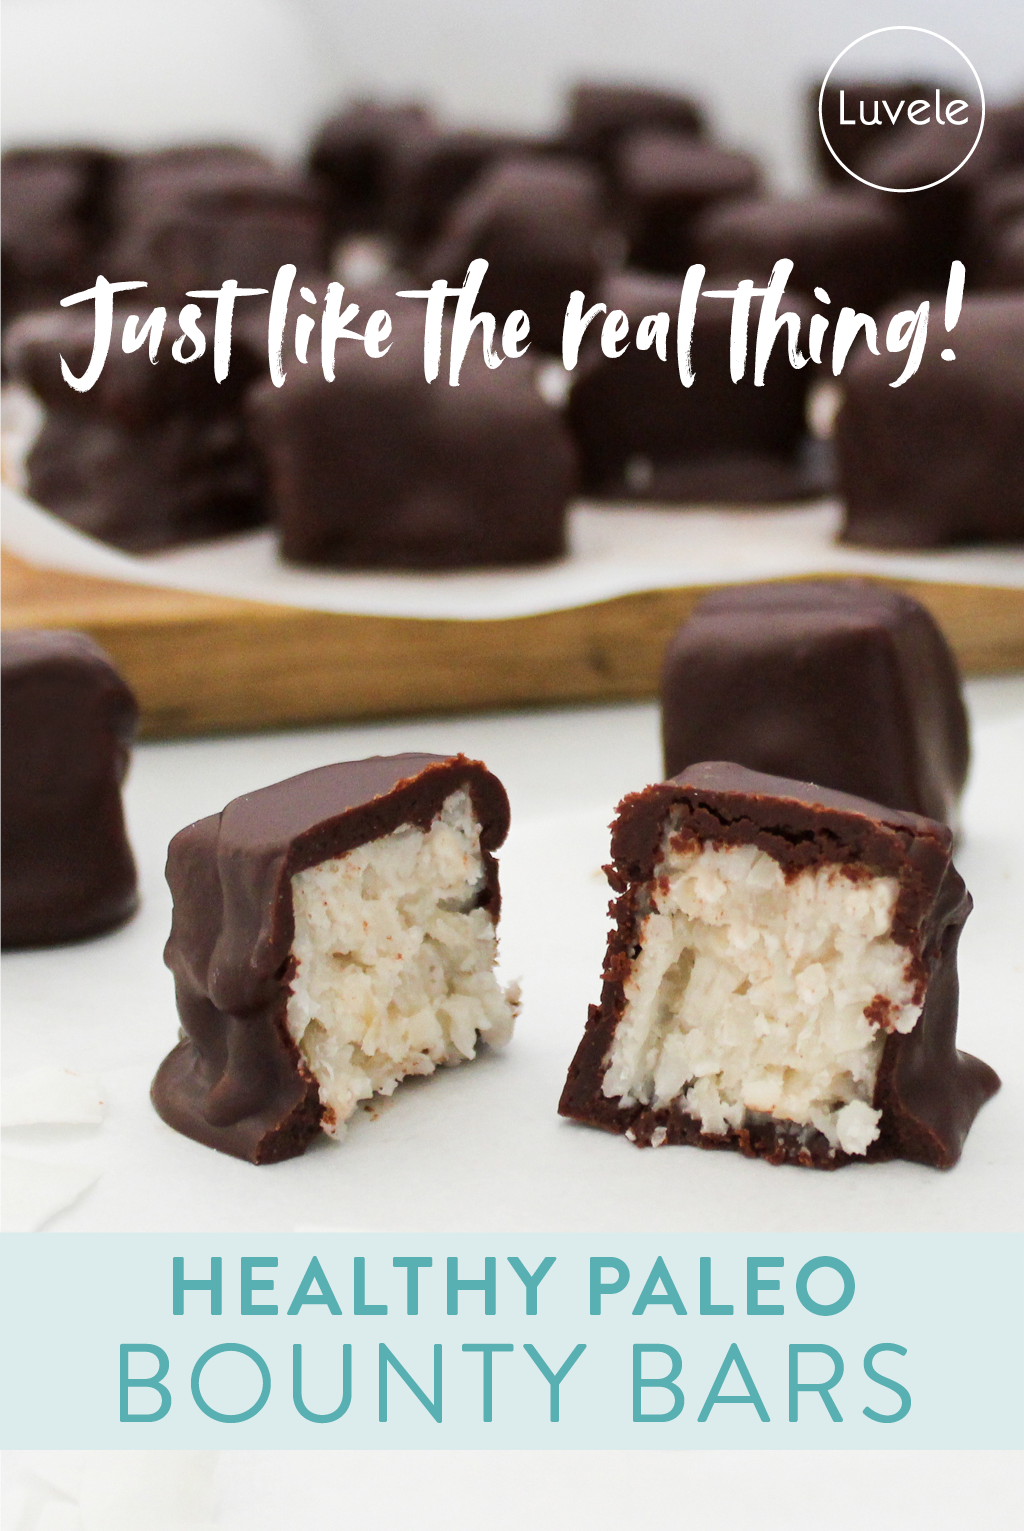 Homemade Paleo Bounty bars